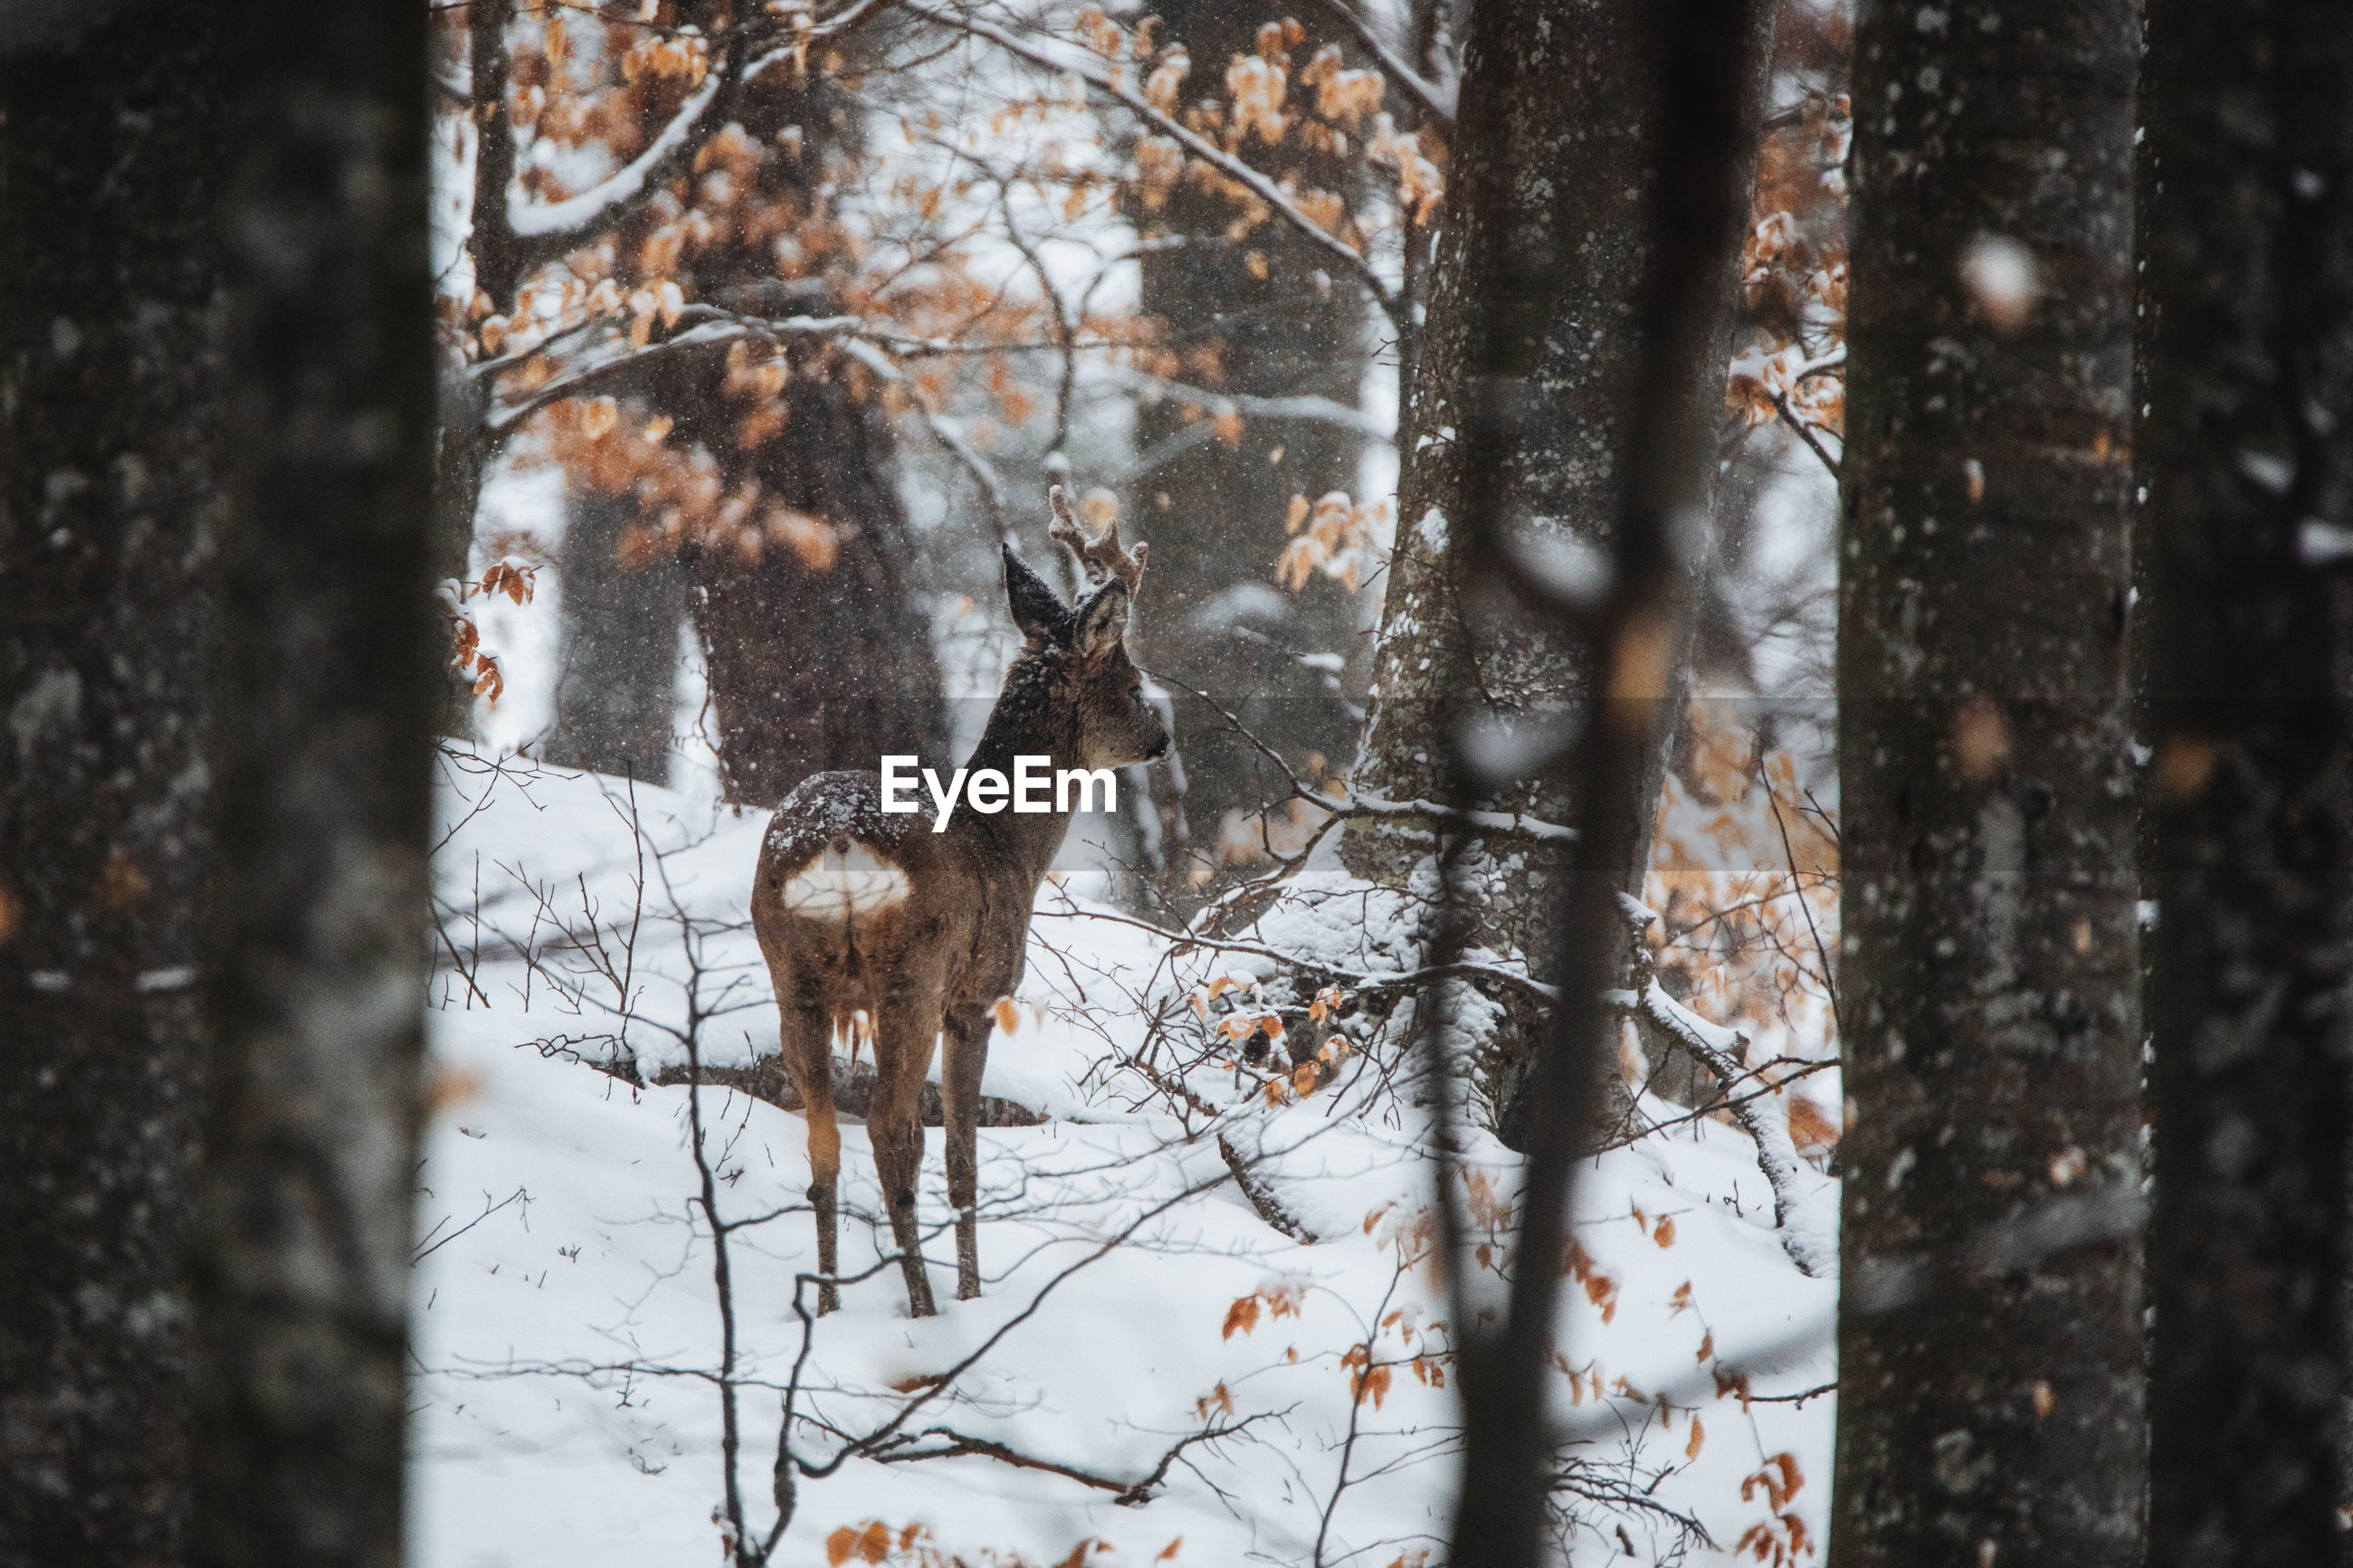 VIEW OF DEER ON SNOW COVERED TREES